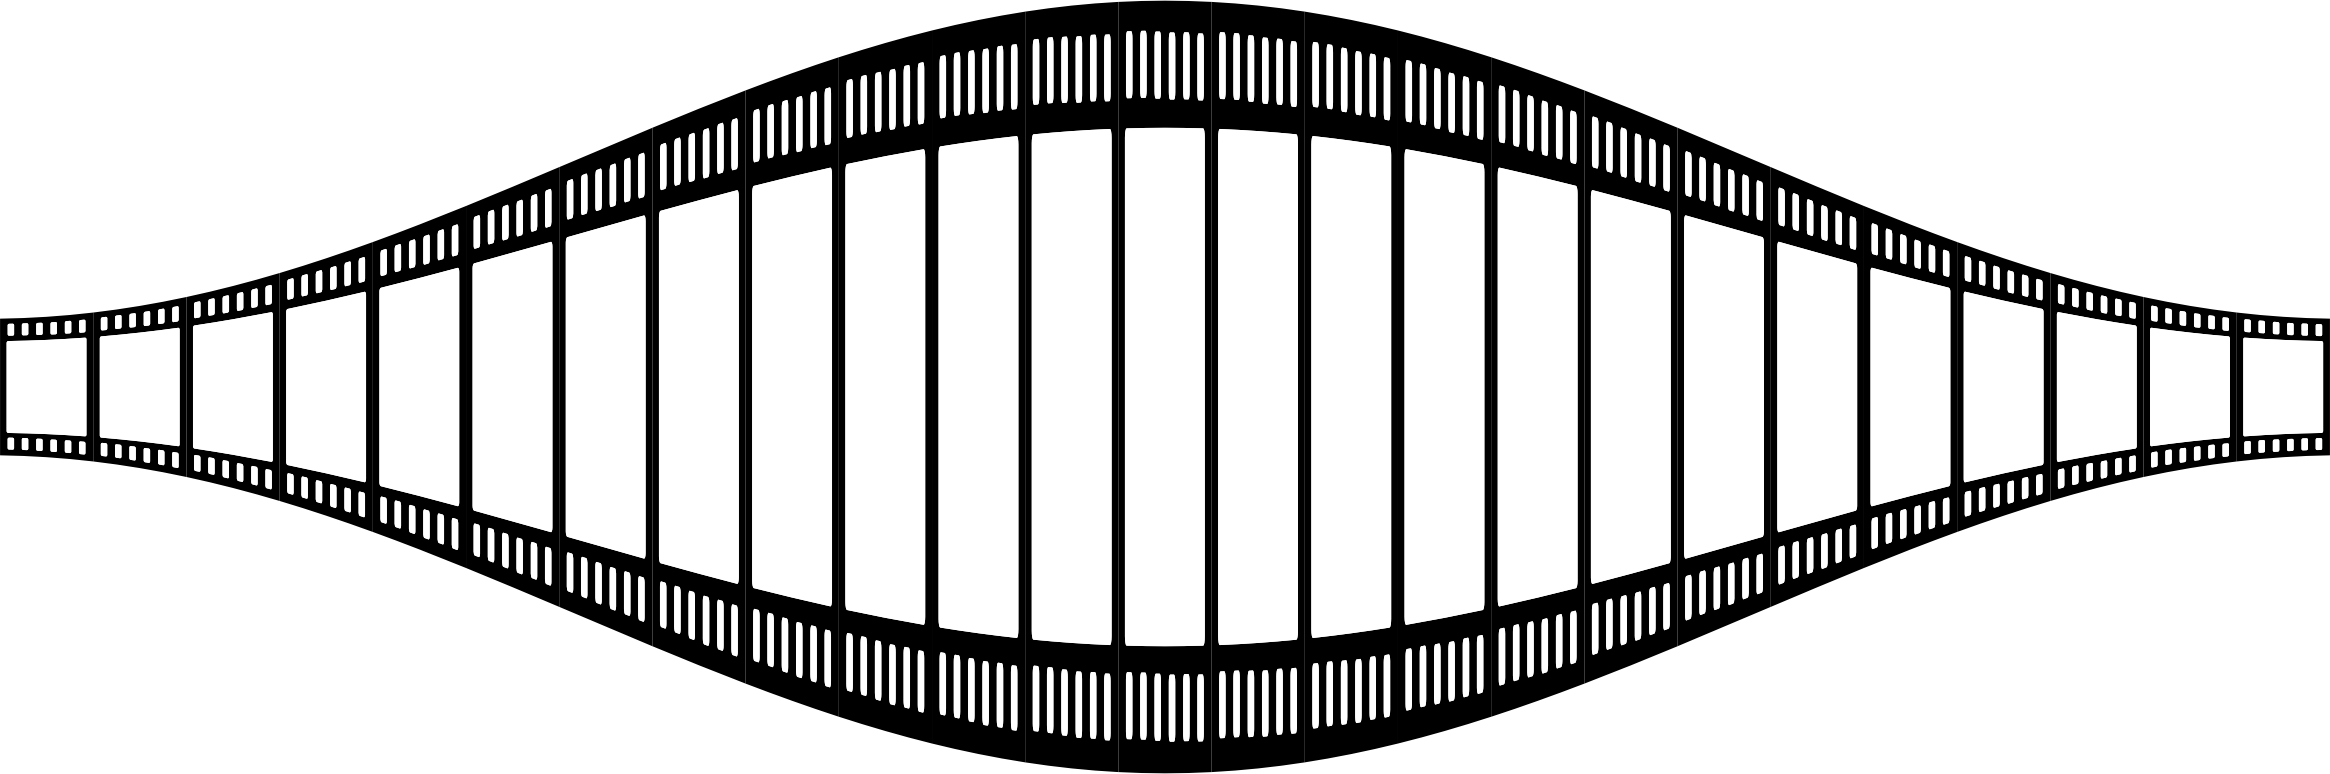 Png film strip. Clipart perspective big image